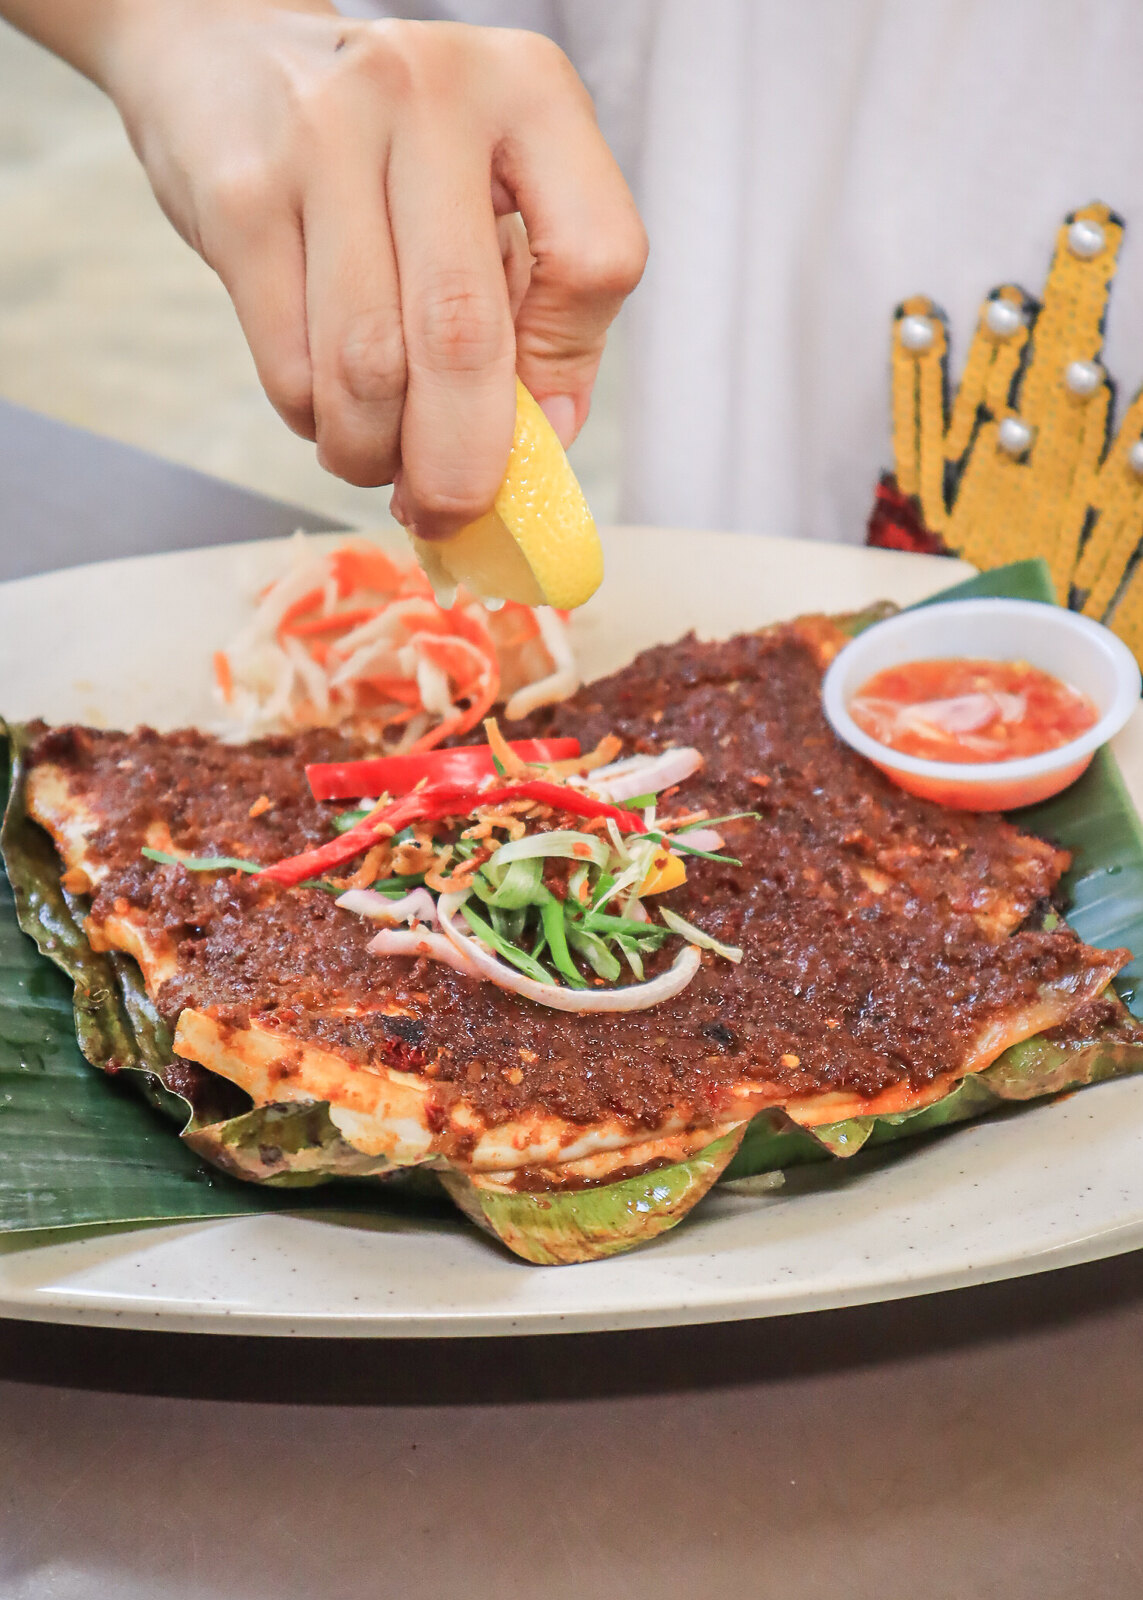 Stingray Forever BBQ Seafood – This BBQ Stingray Will Make Your Day!